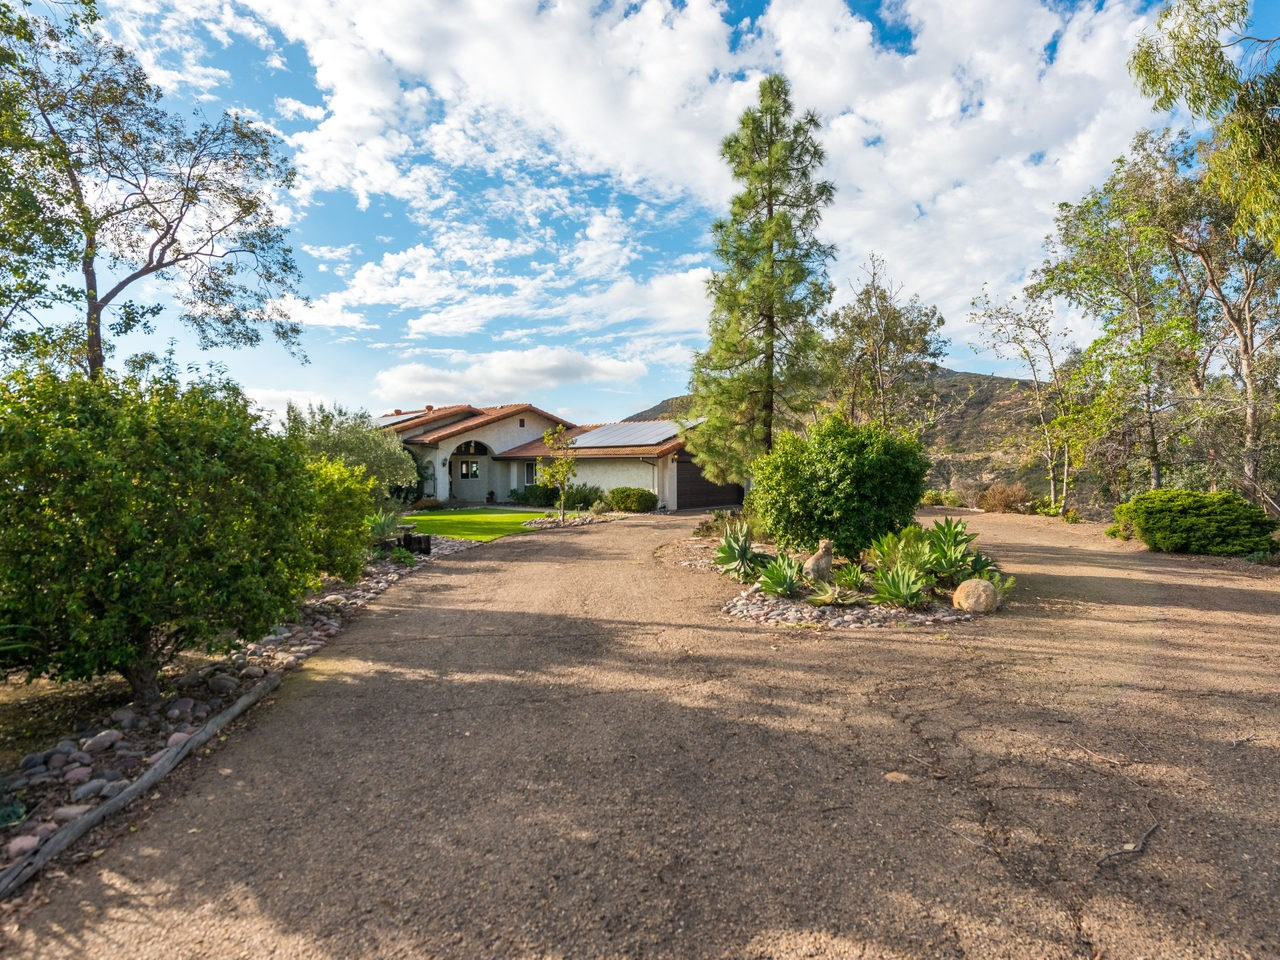 15380 Lyons Valley Rd, Jamul, CA